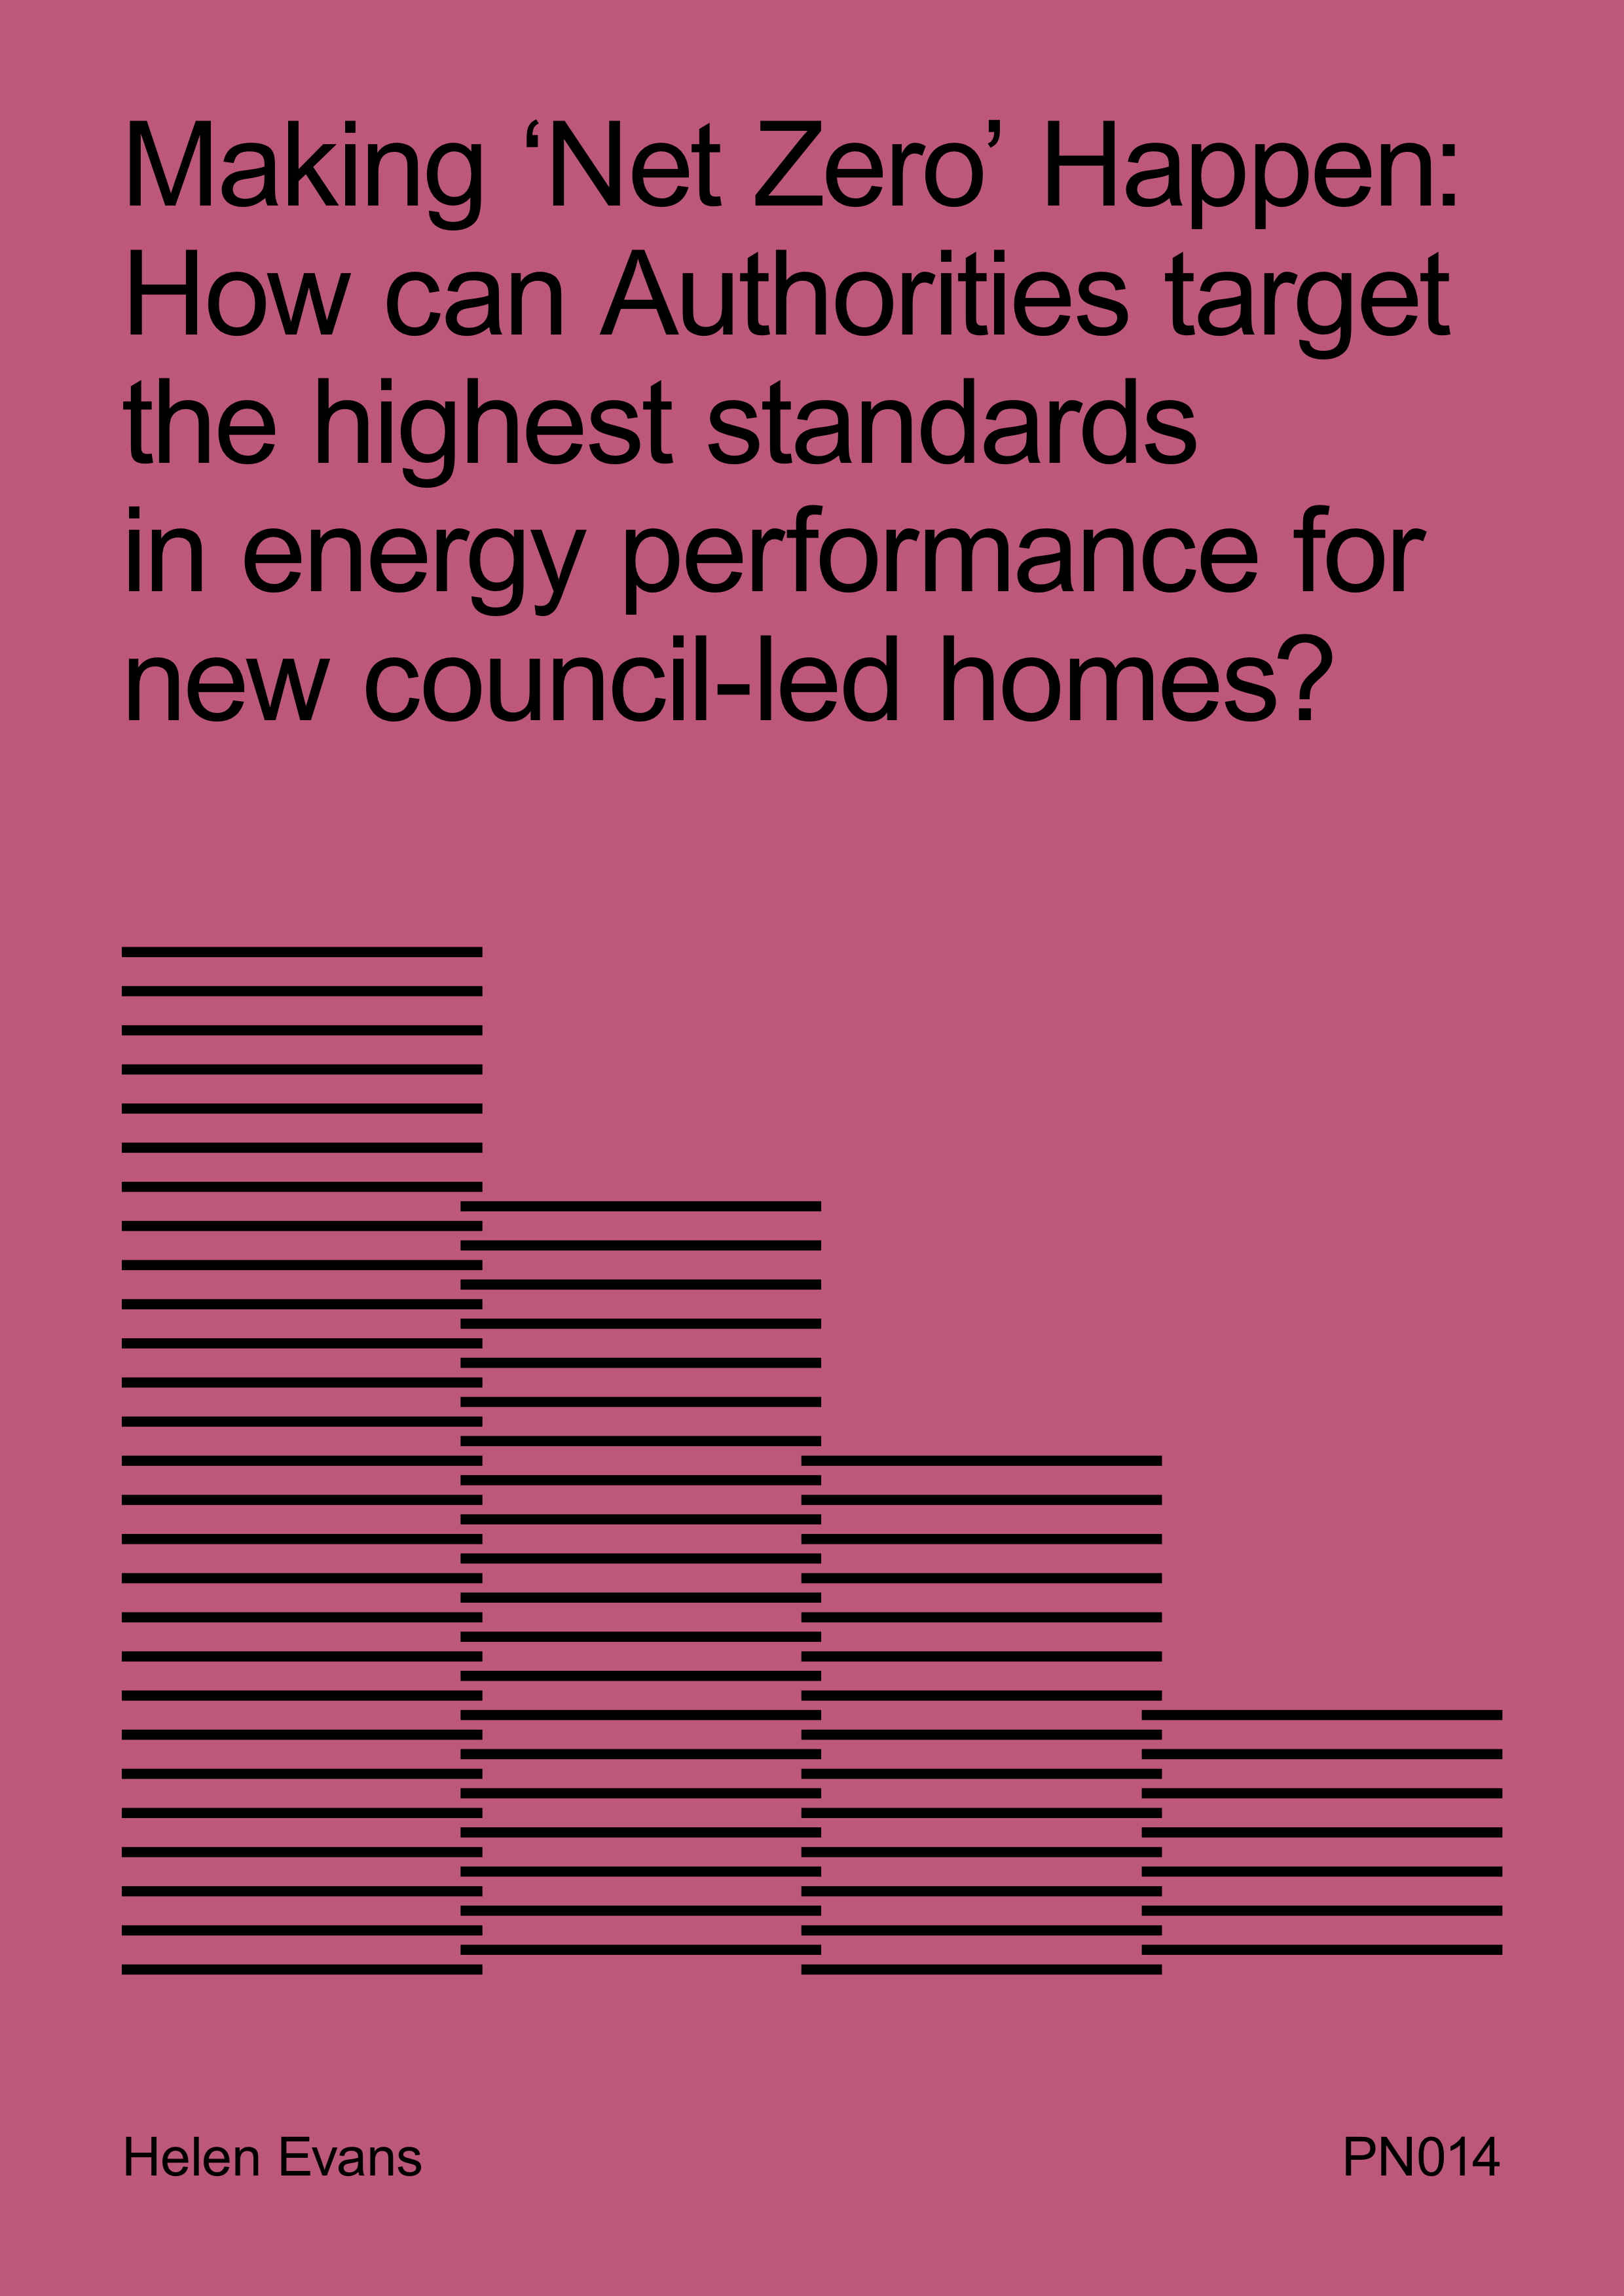 MAKING NET ZERO HAPPEN How can Authorities target the highest standards in energy performance for new council-led homes?